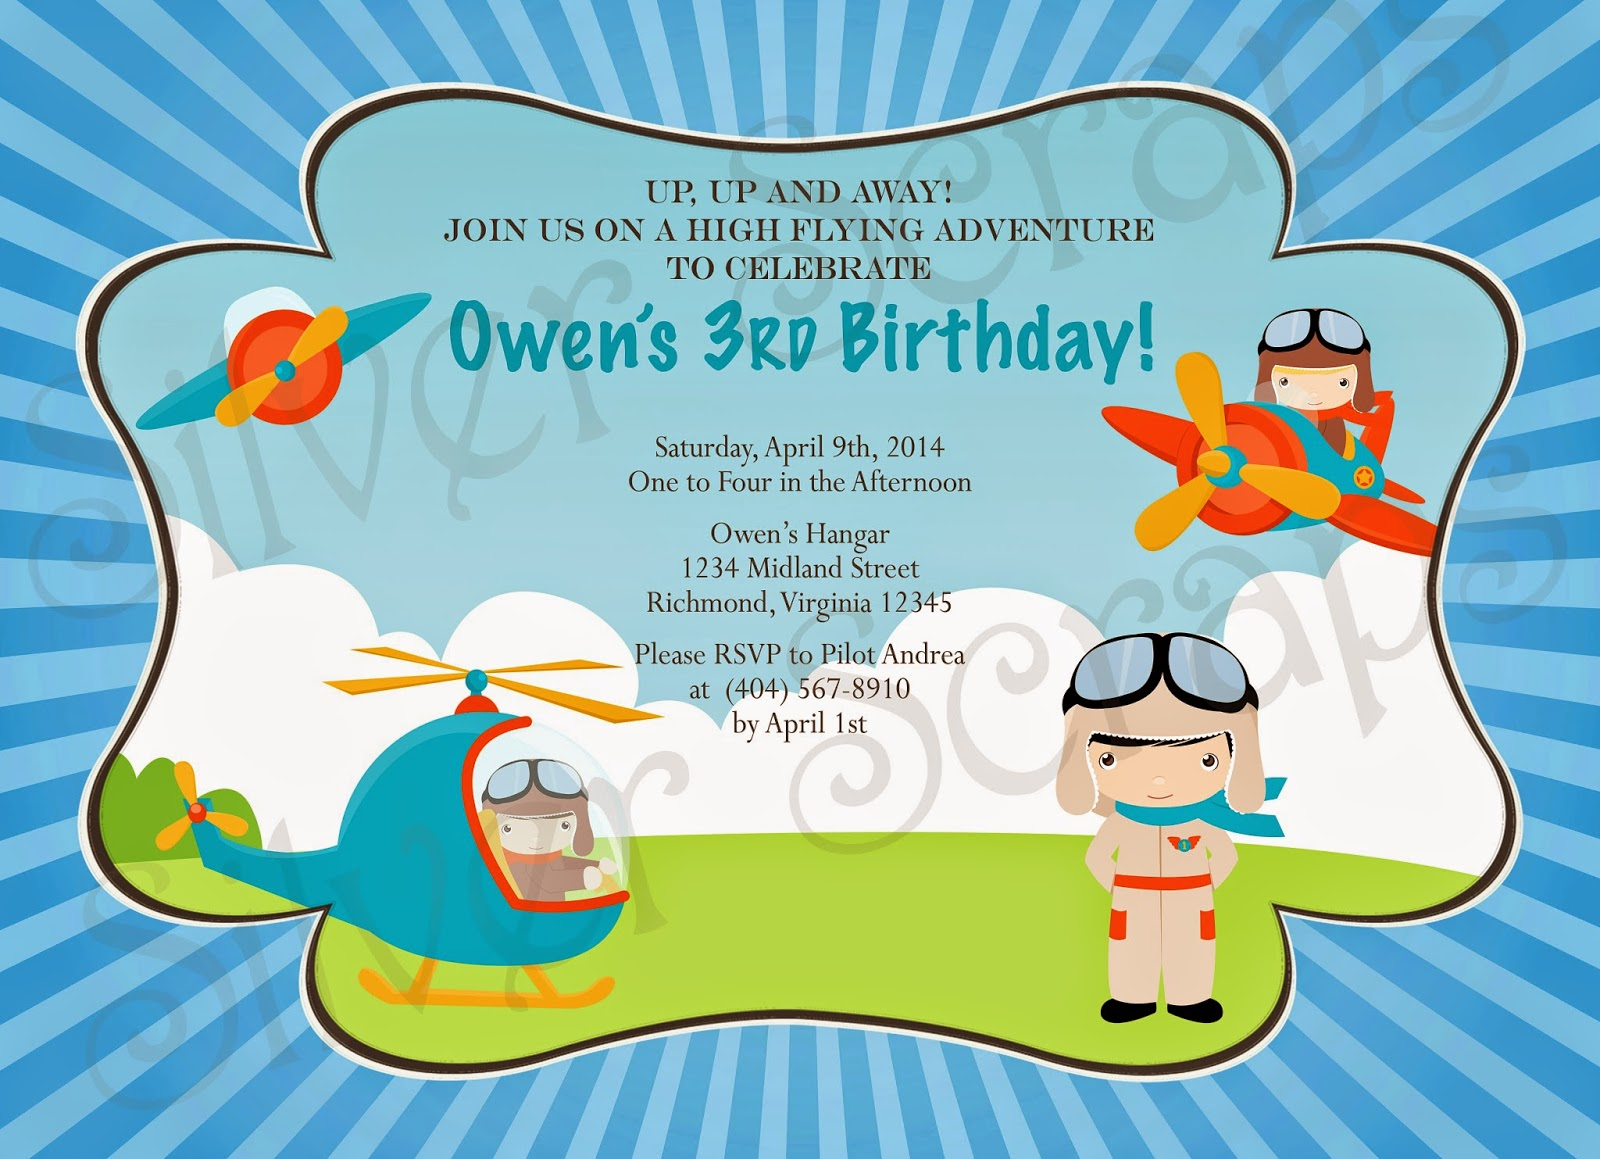 Up, Up, and Away - Custom Digital Airplane Birthday Invitation -Boy Plane Fly Flying Helicopter Pilot Red Blue Yellow - 5 Printable Designs aviator blue chevron red yellow orange helicopter goggles blue polka dots